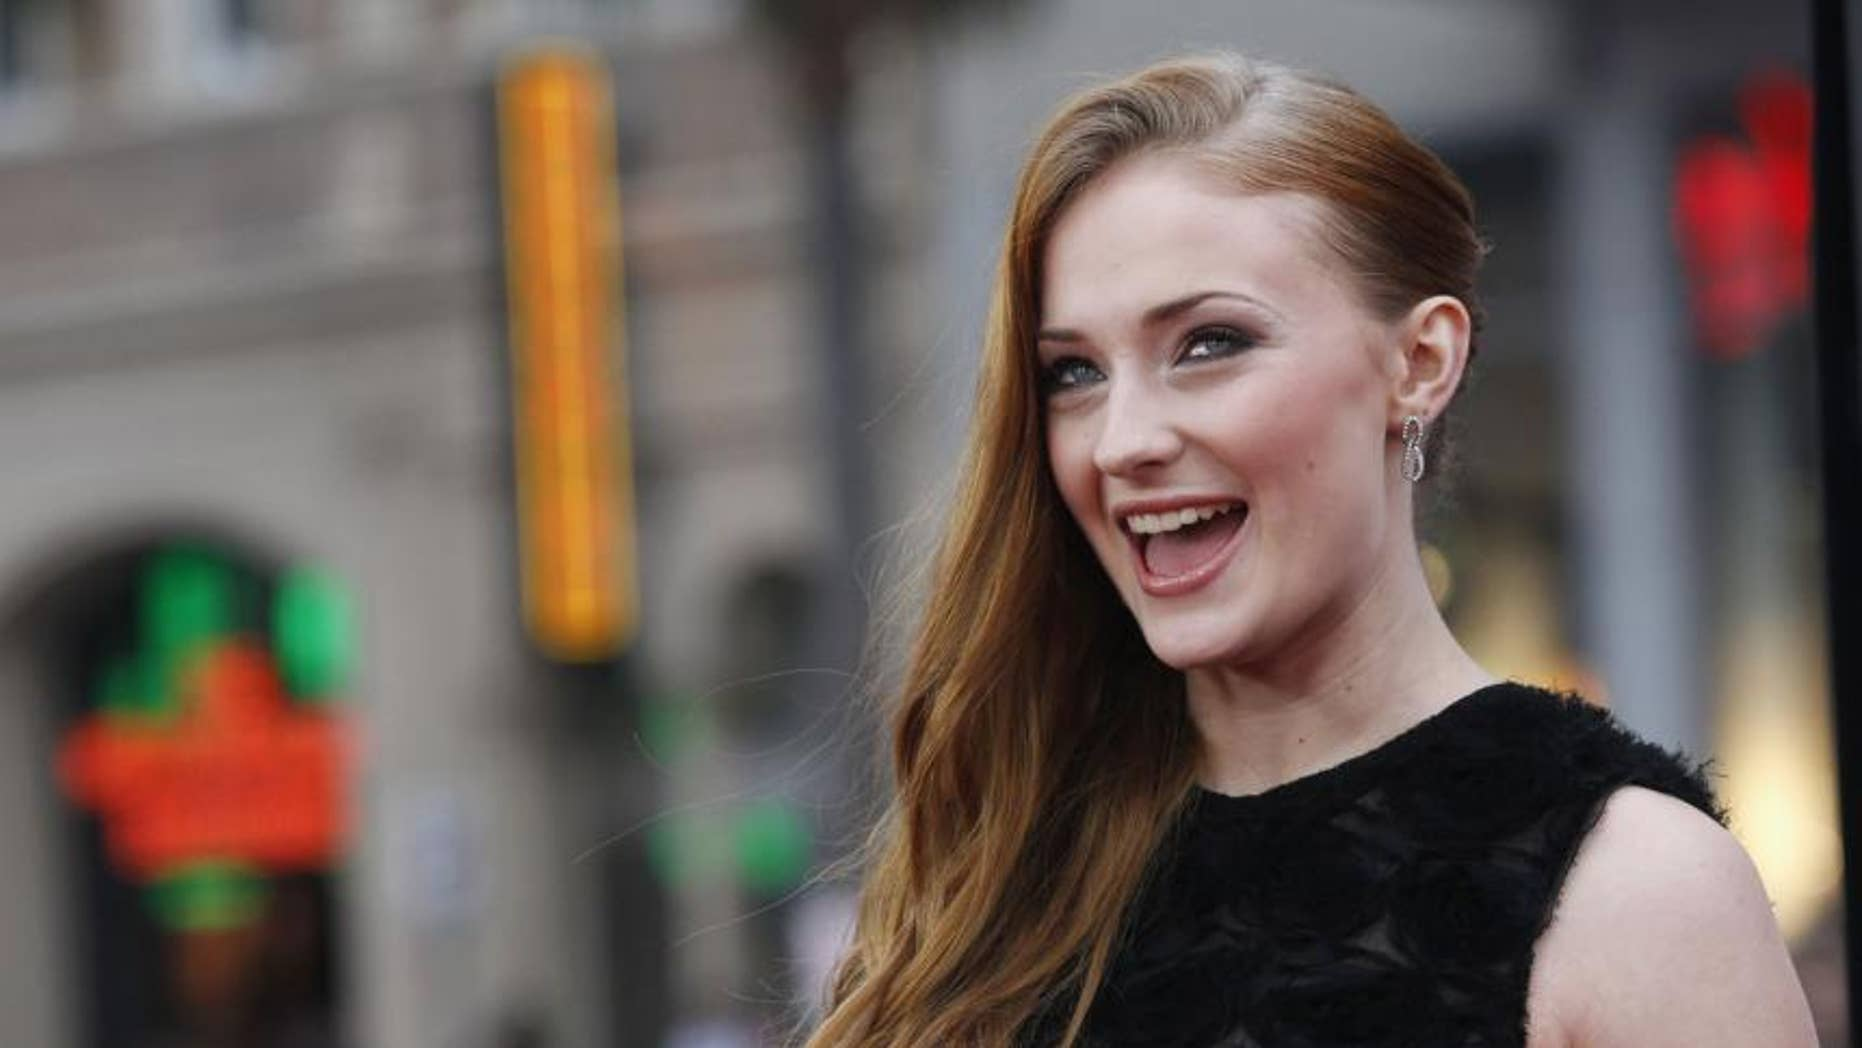 """Game of Thrones"" star Sophie Turner went to the New York Rangers game Tuesday night where she impressed a crowd of fans by downing a glass of red wine."